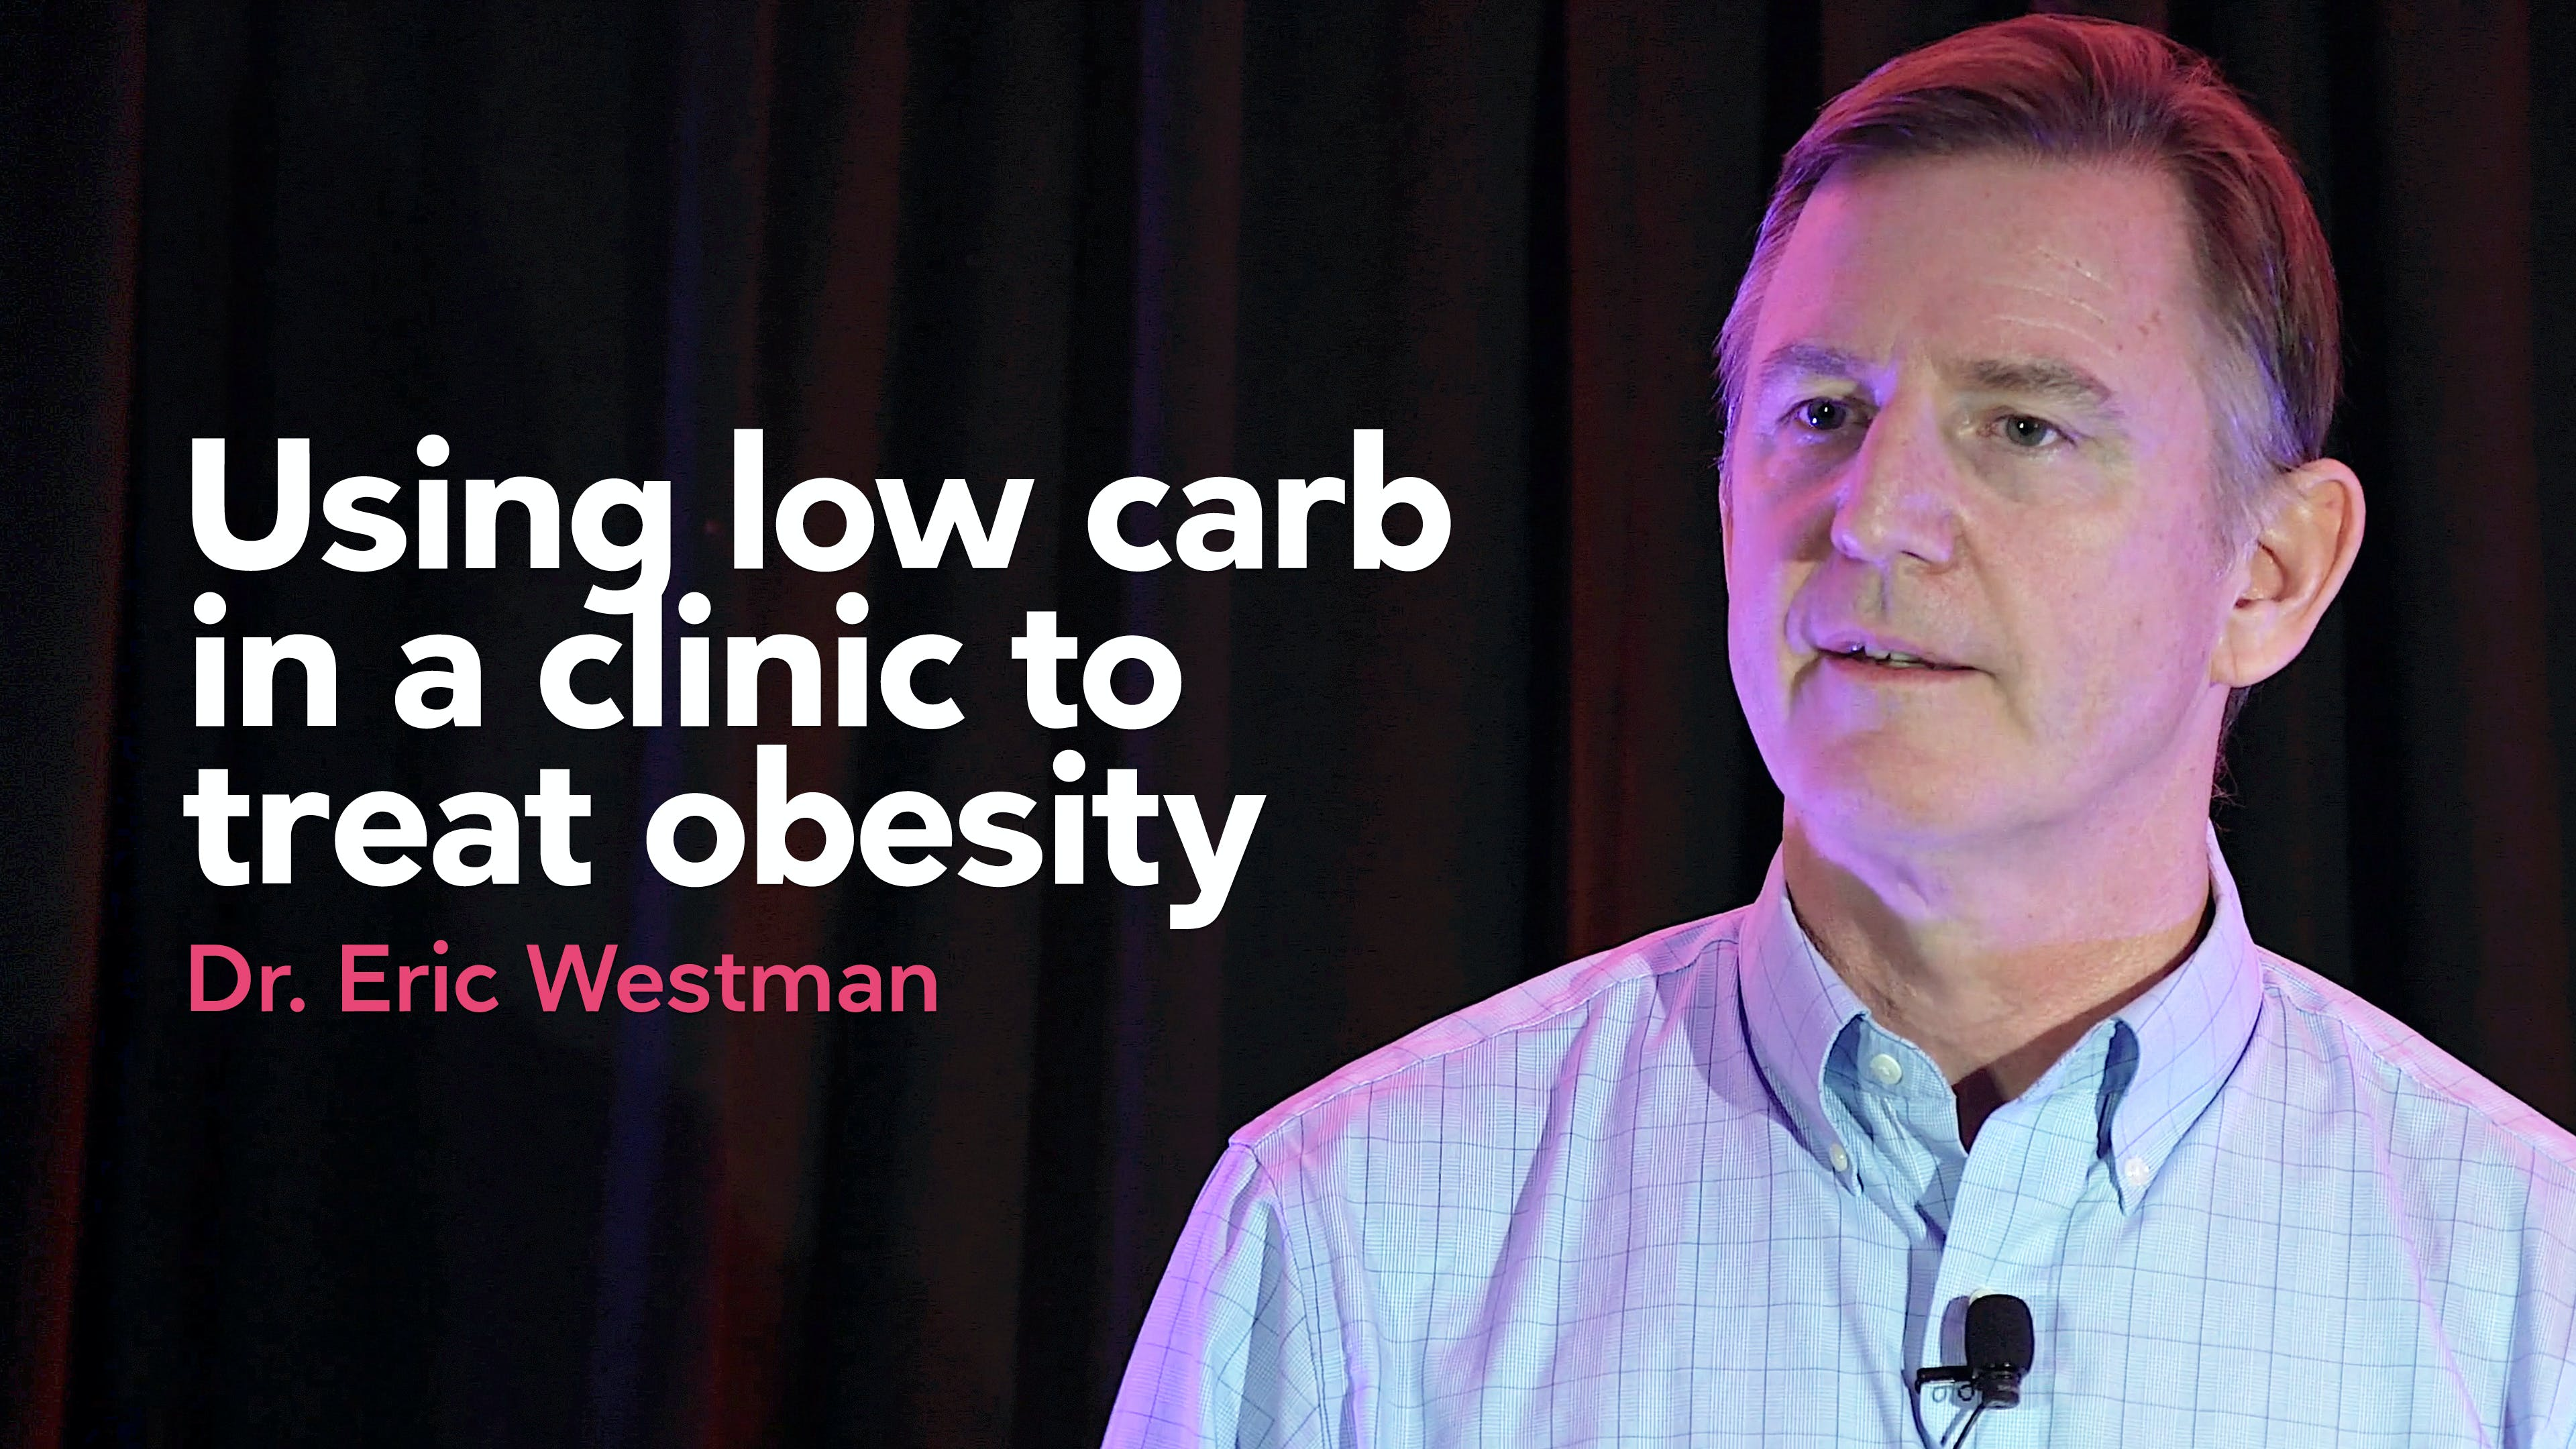 Using low carb in a clinic to treat obesity